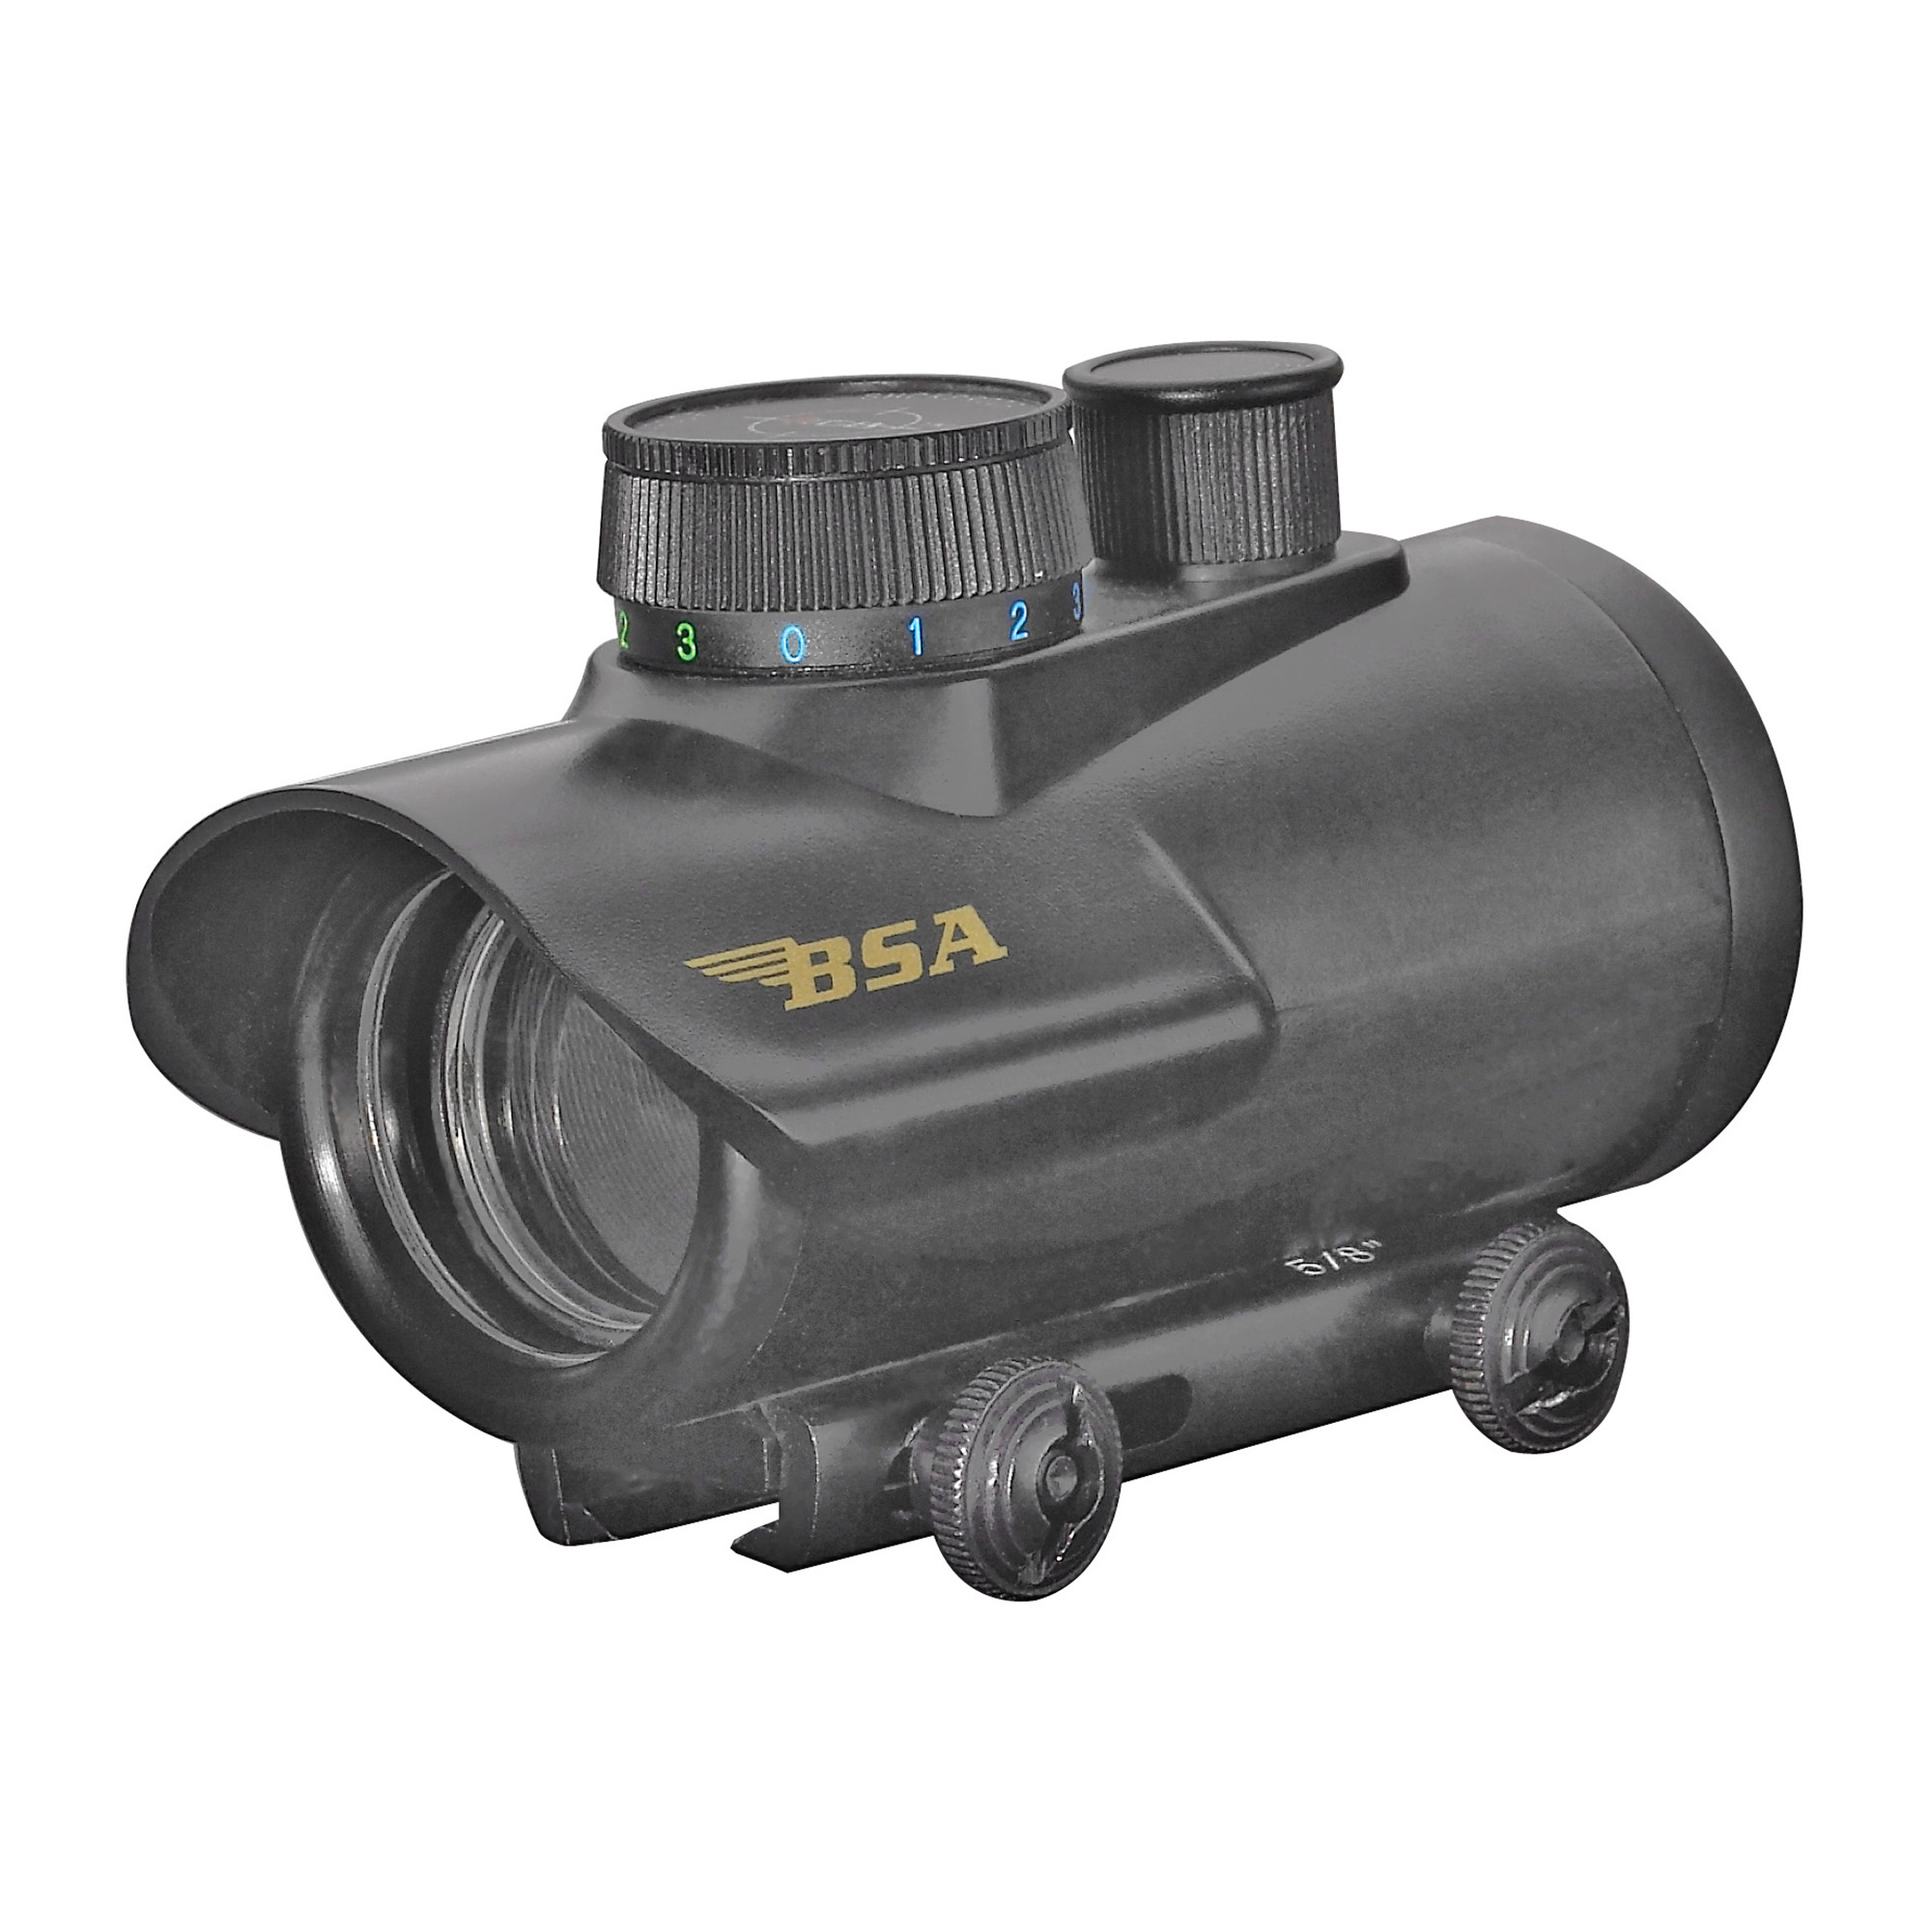 Bsa Ir Dot Rd/gr/bl 30mm Blk